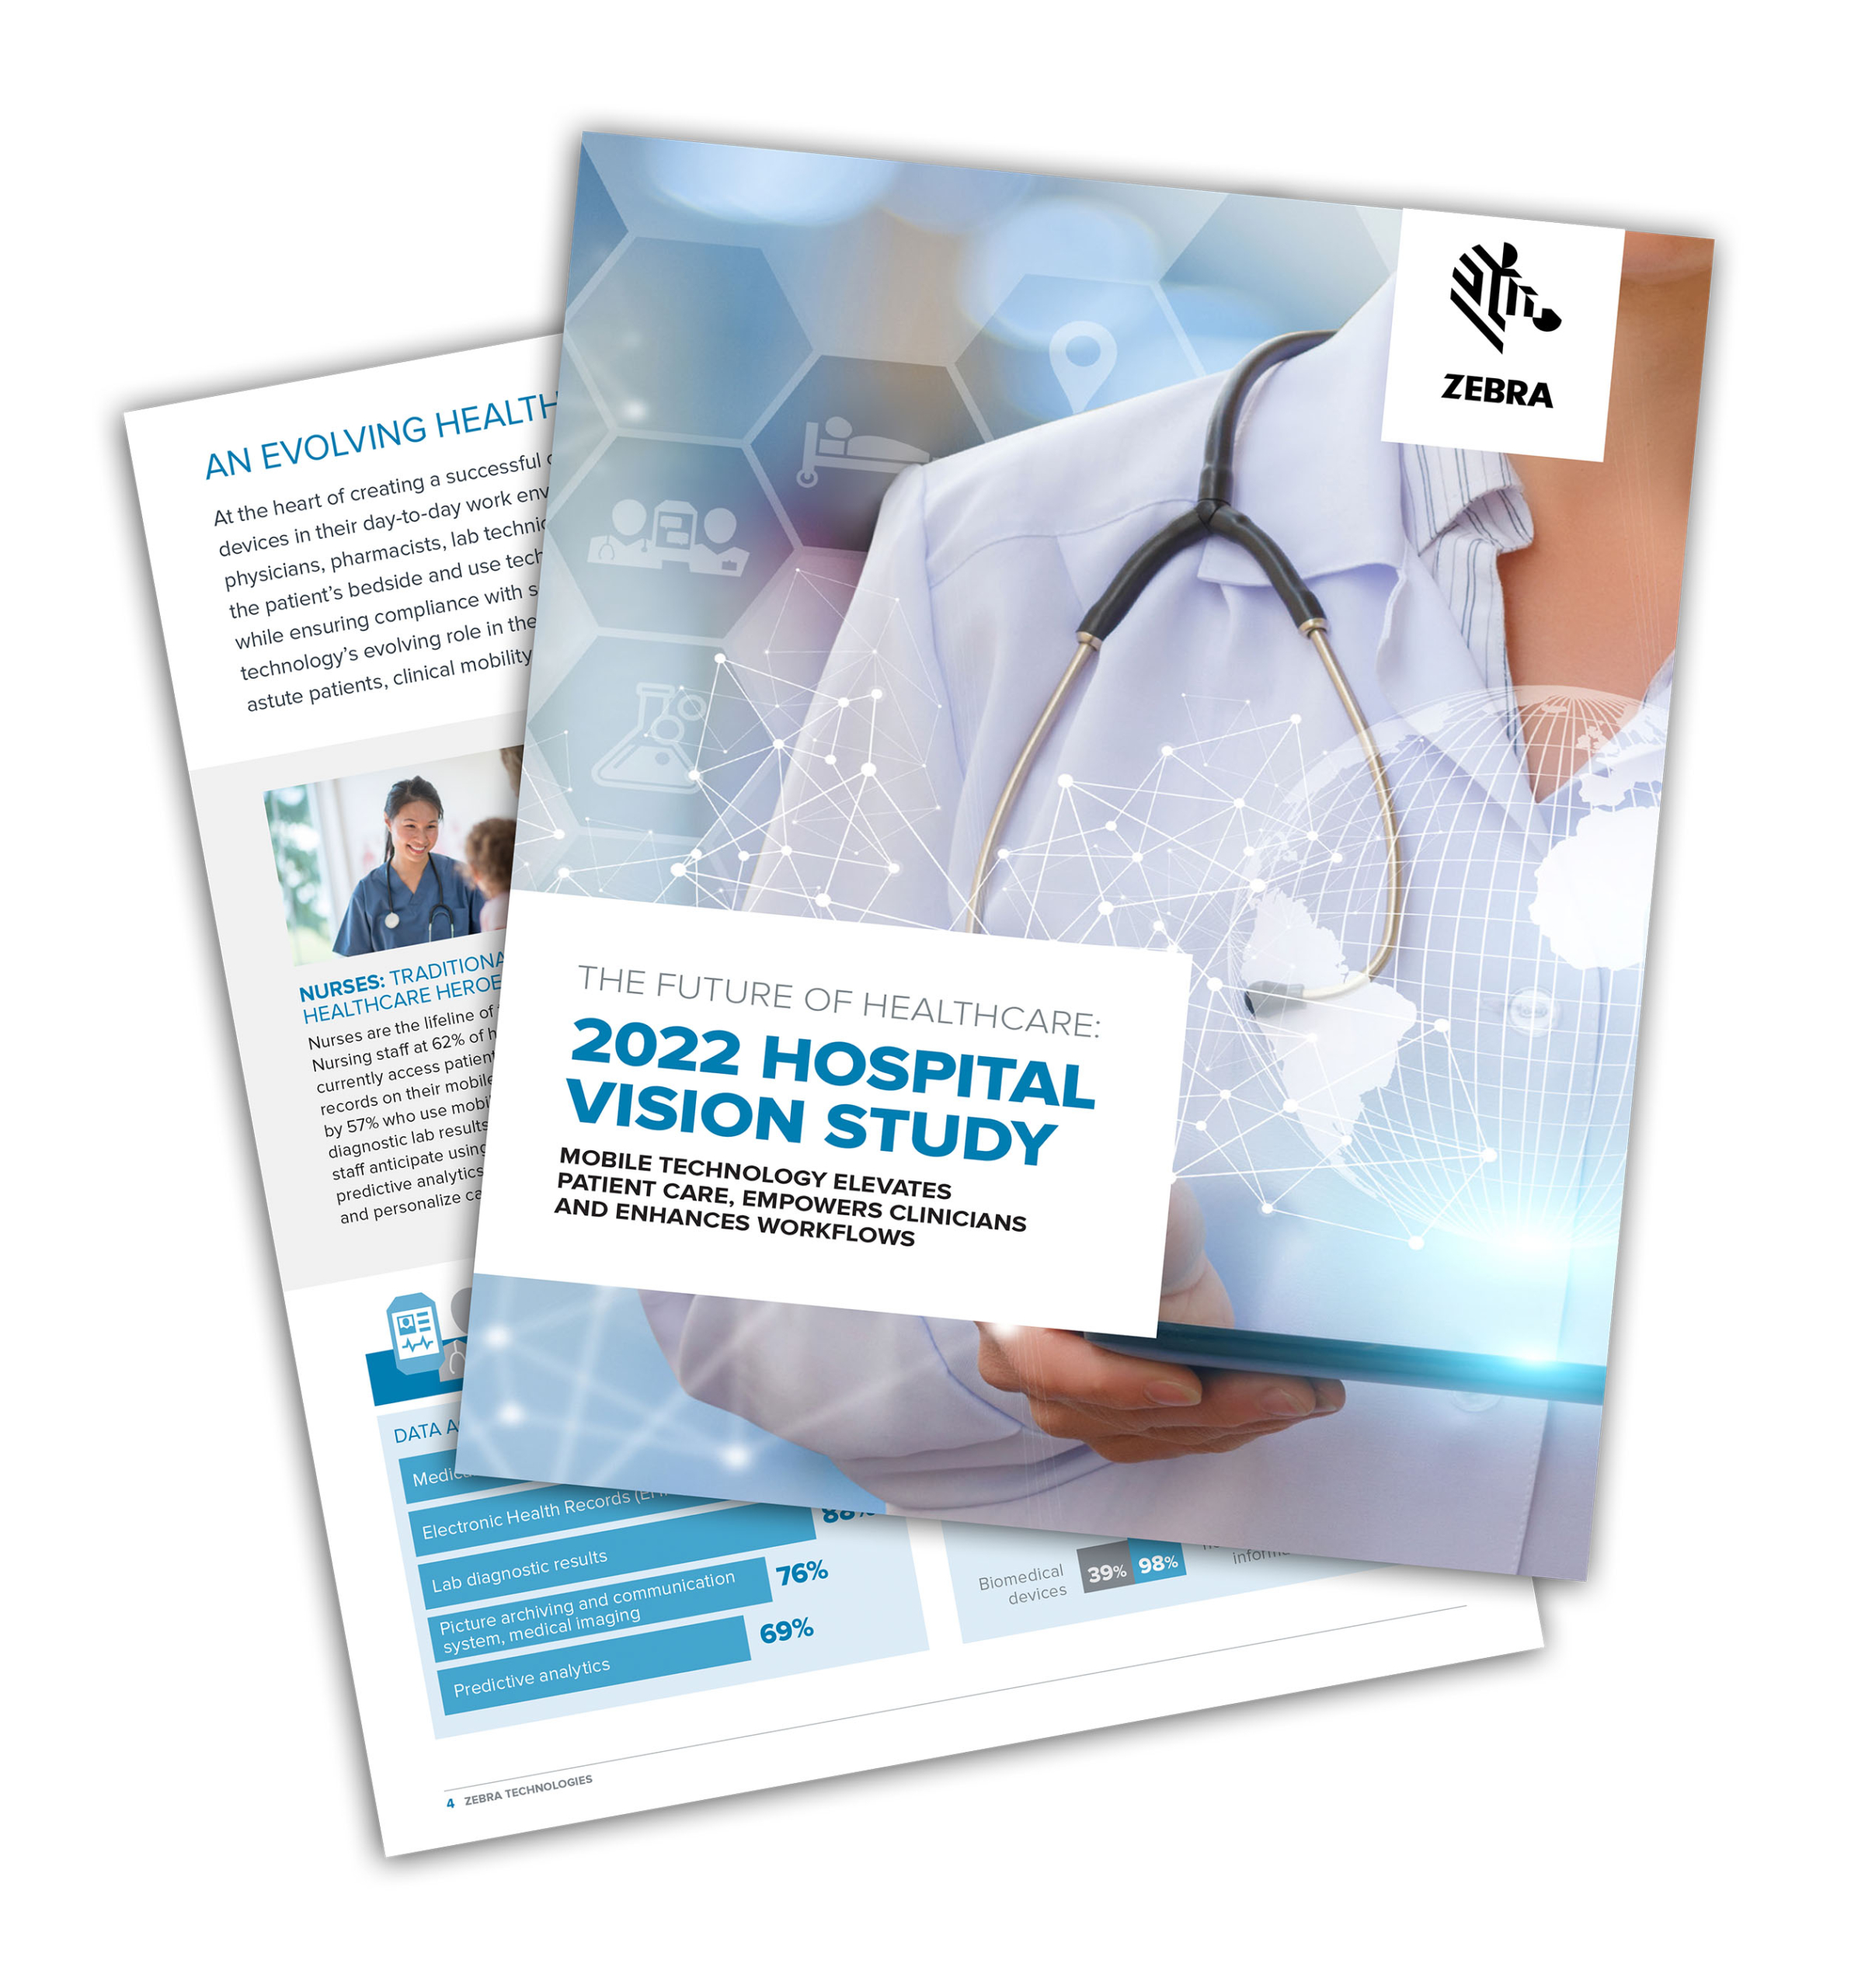 The Future of Healthcare: 2022 Hospital Vision Study